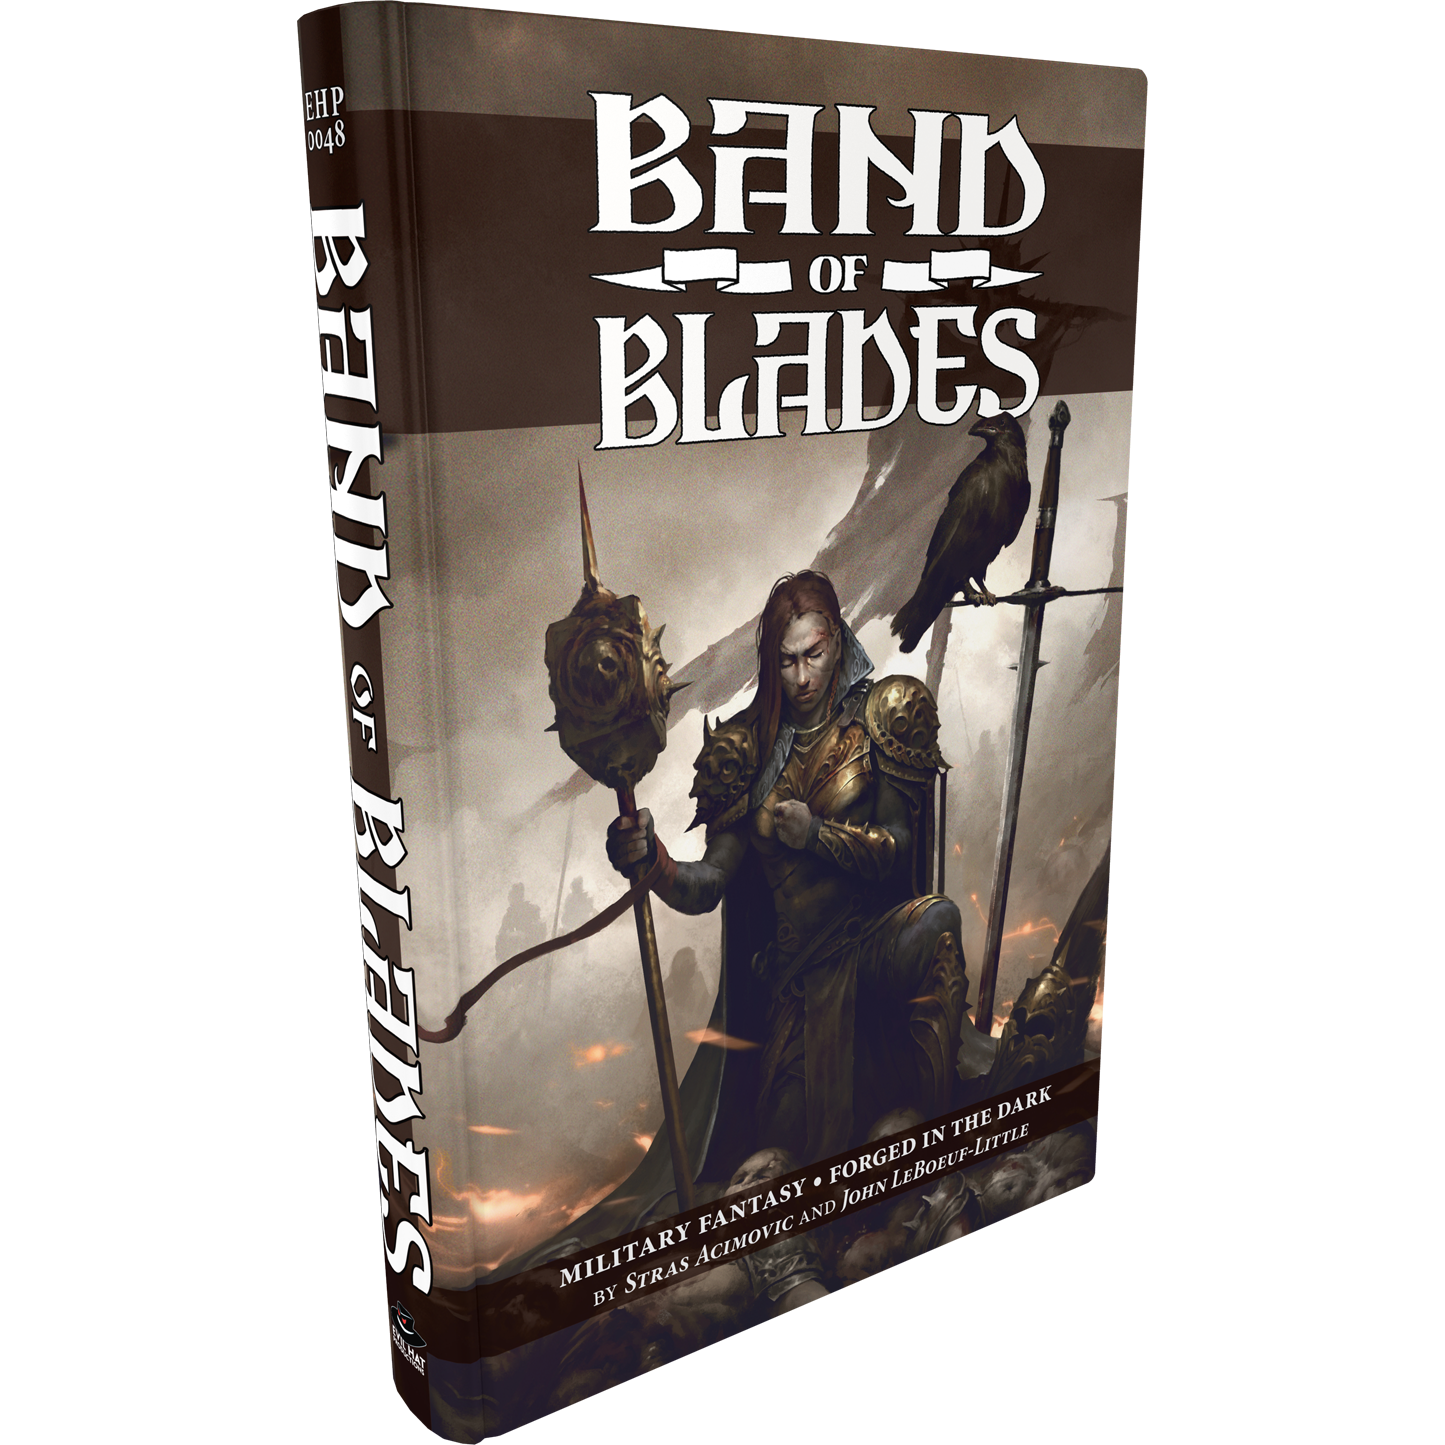 Band of Blades